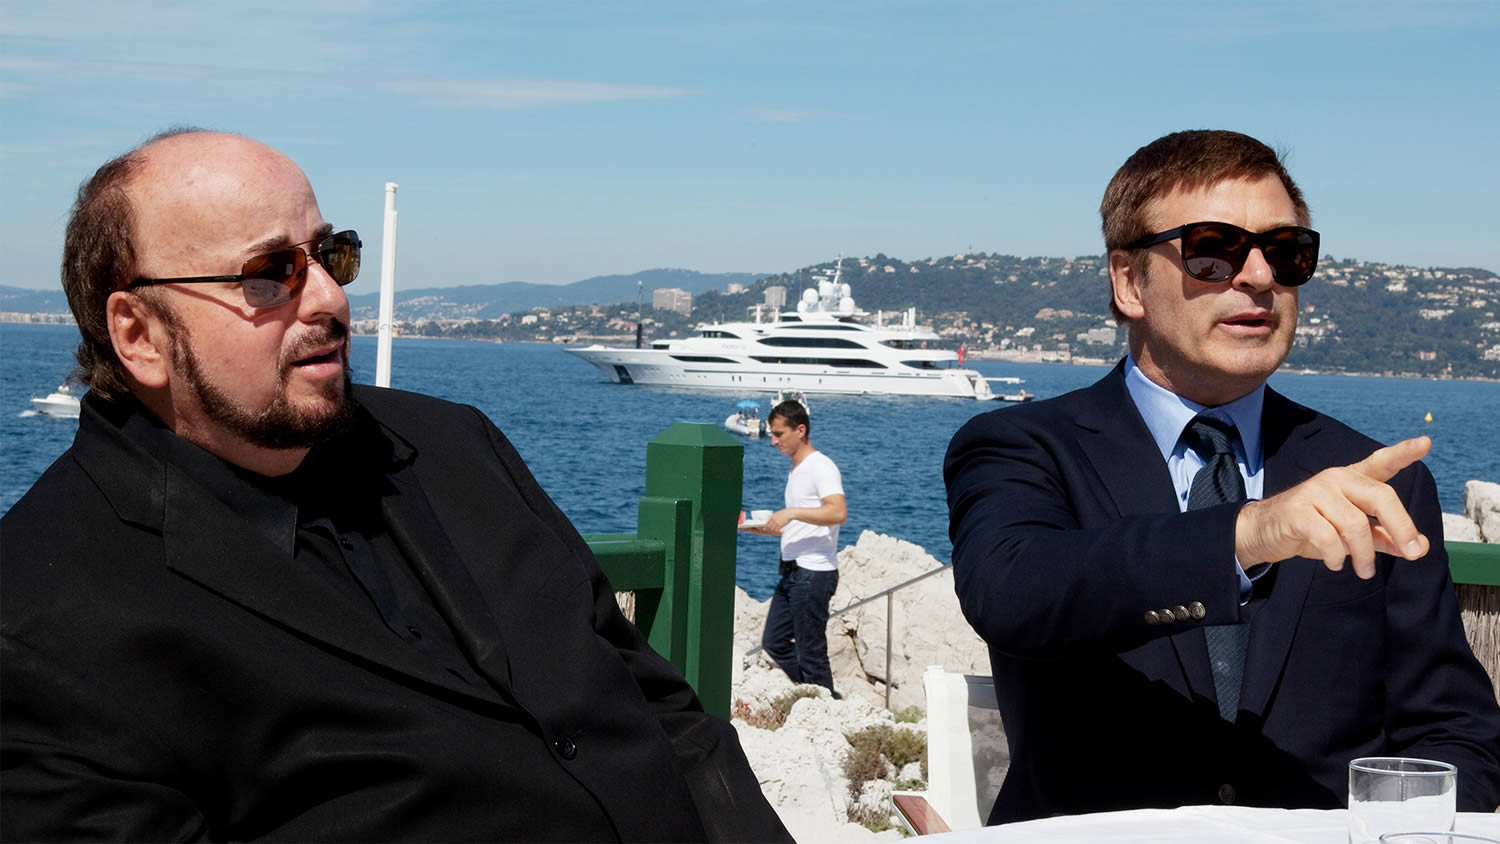 actors at cannes. seduced and abandoned documentary